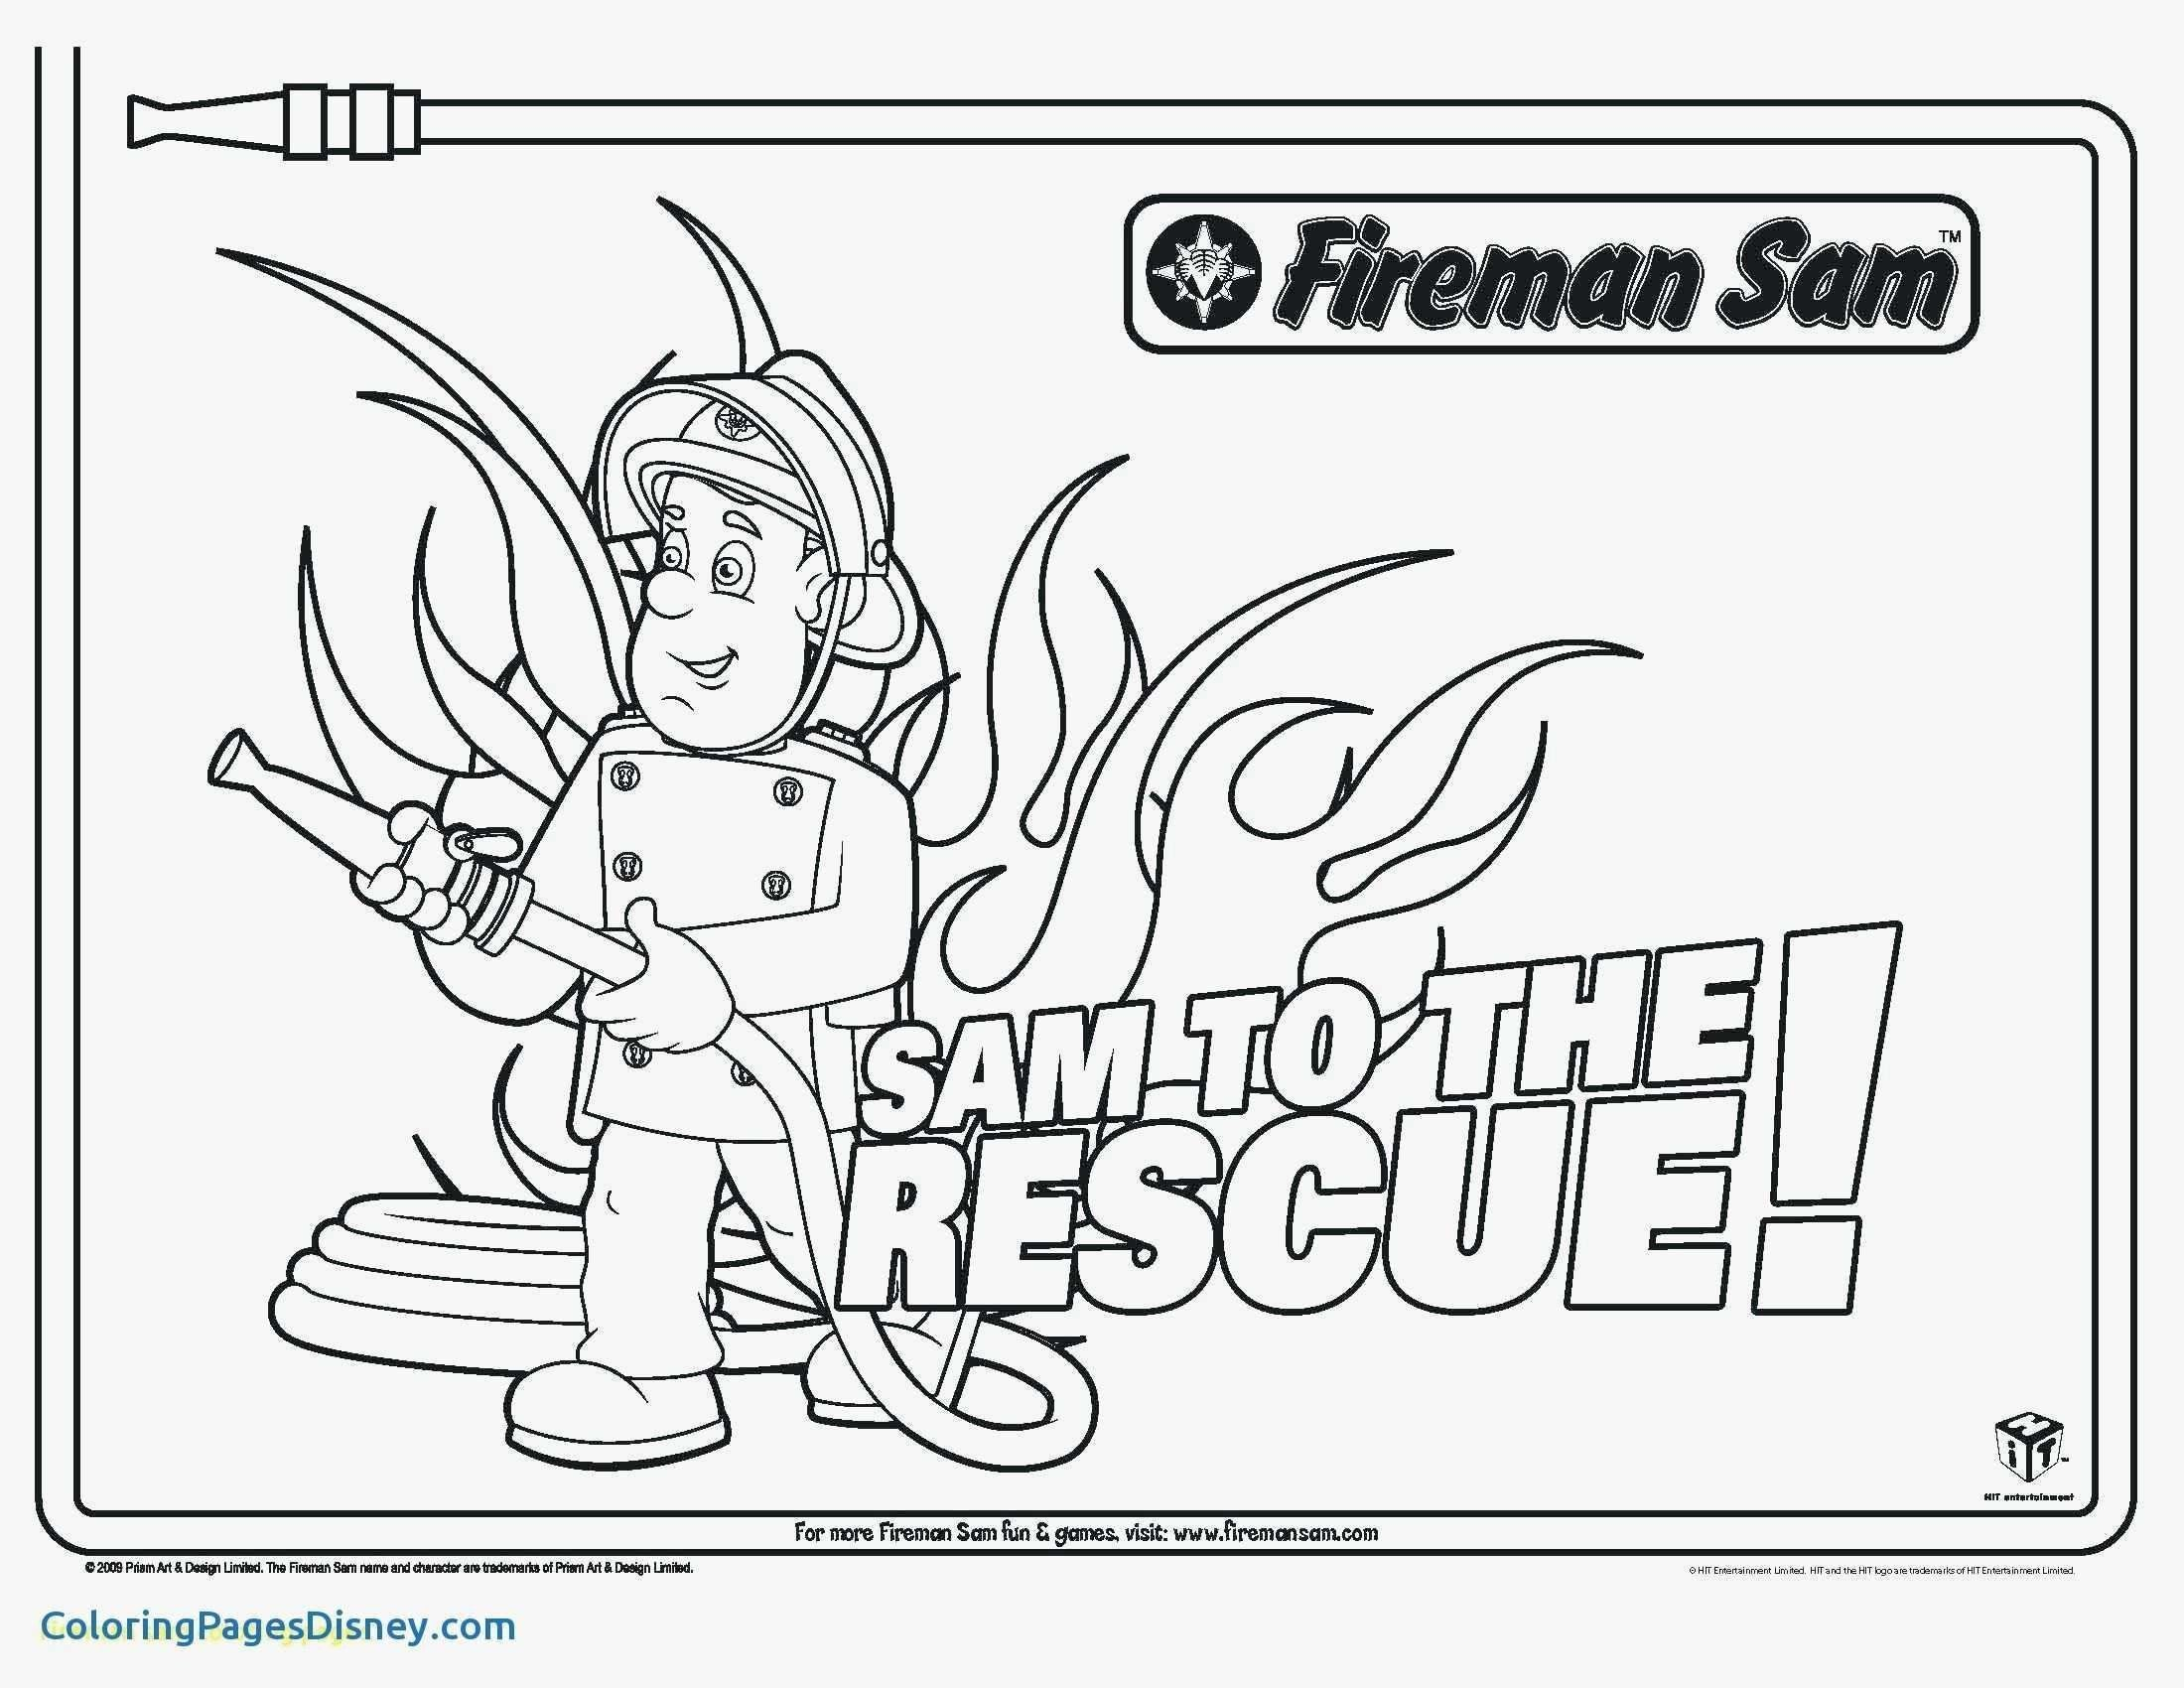 Curious George Coloring Pages Awesome Num Noms Coloring Pages Luxury Curious George Printables Curious George Coloring Pages Fireman Sam Coloring Pages